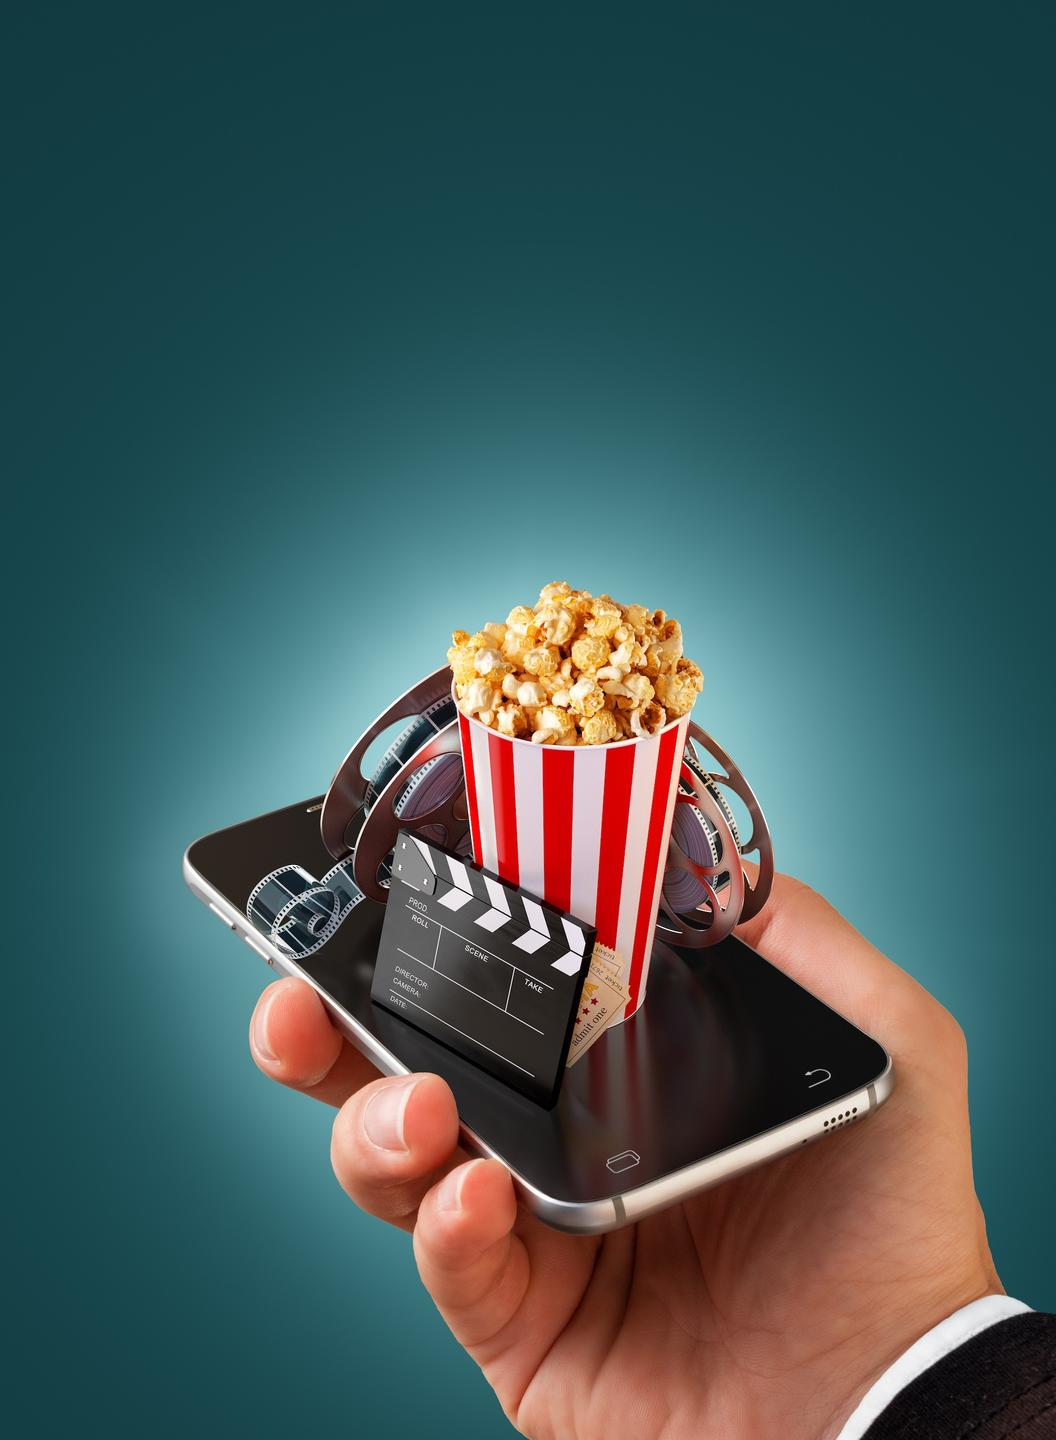 Phone in hand with online business entertainment items: movie tape, directors cut, popcorn